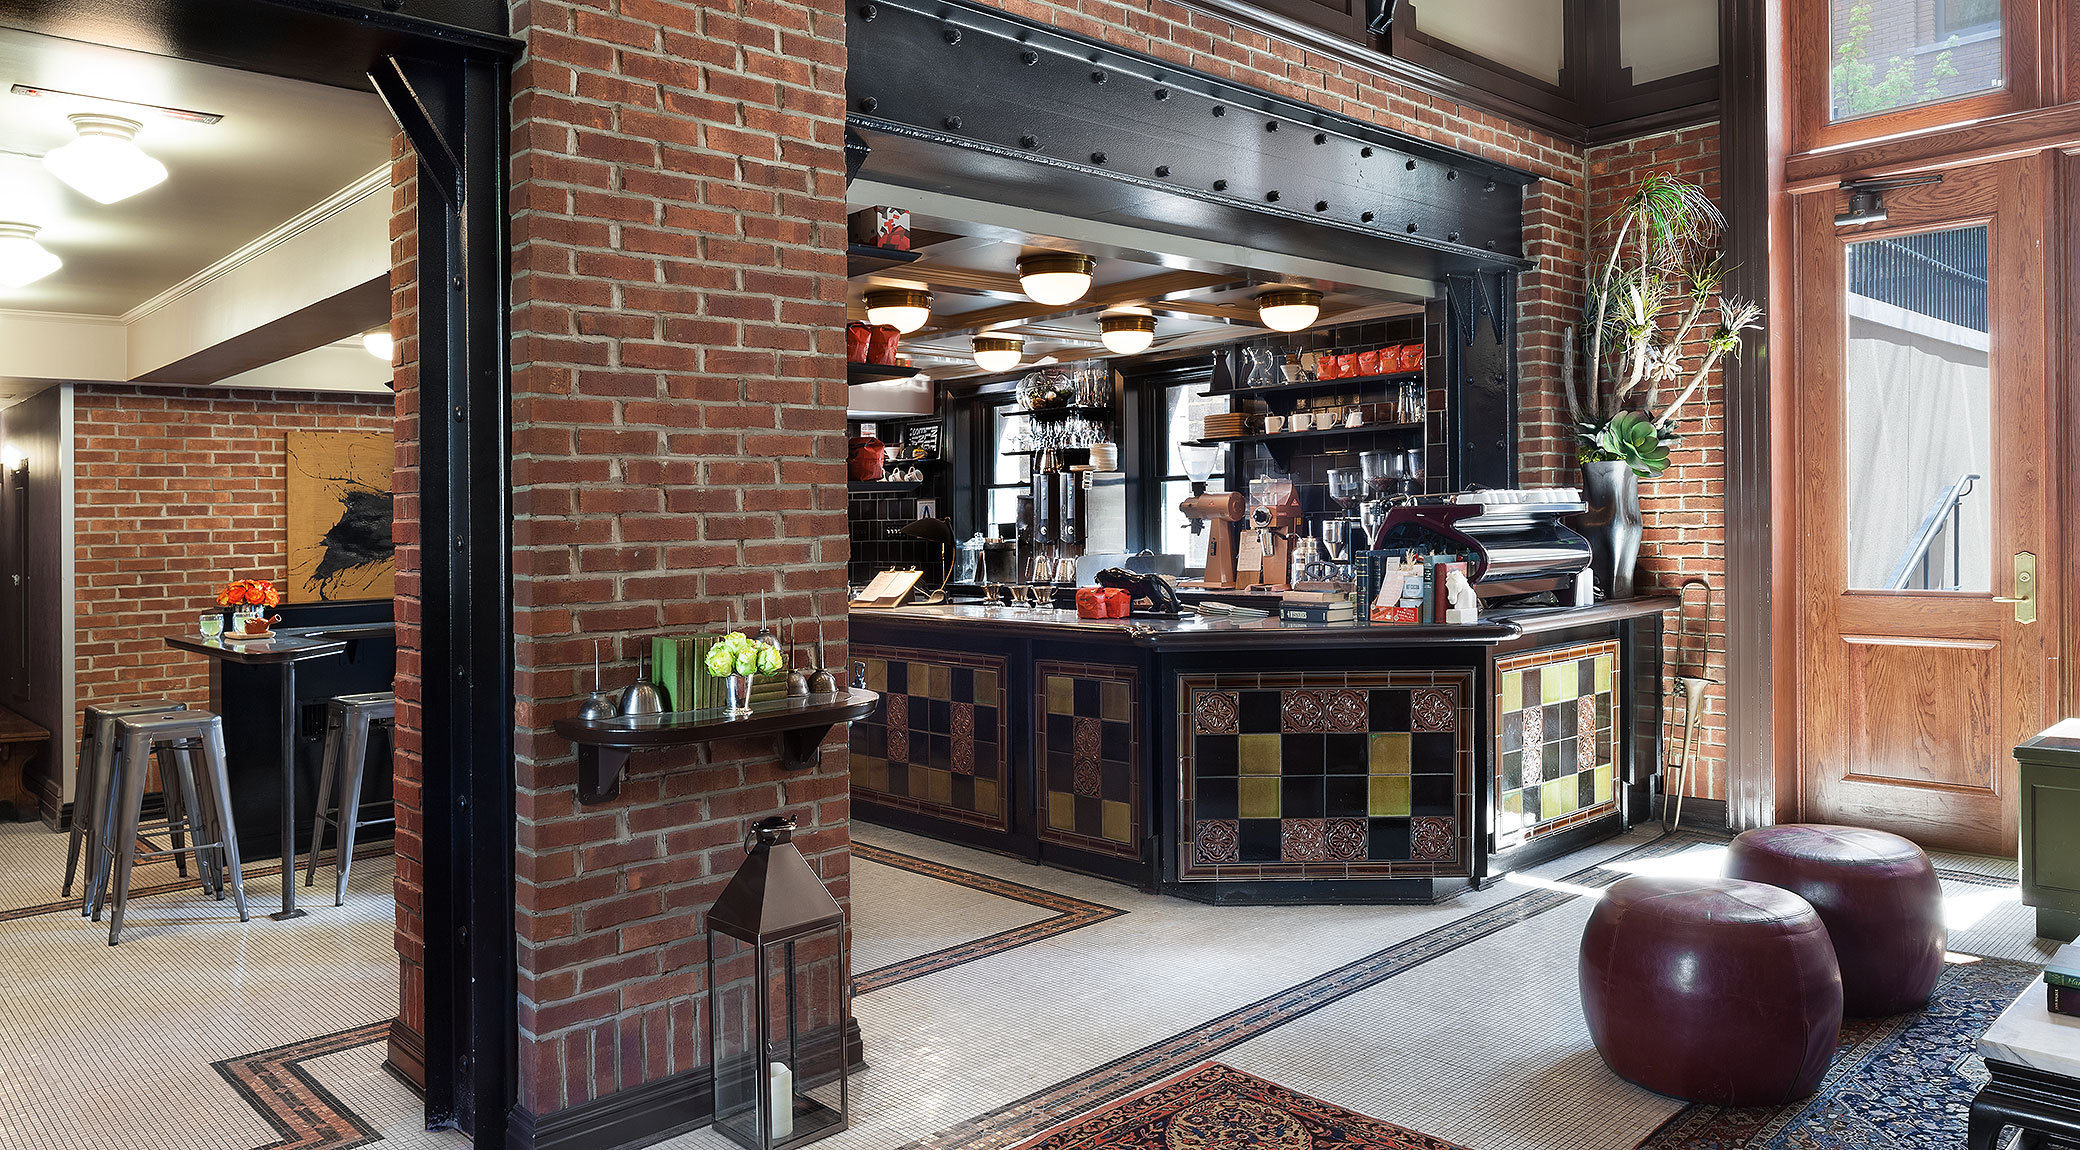 427.Intelligentsia-Coffe-at-High-Line-Hotel-NYC-Melting-Butter-Cafe-Hotspot2.jpg